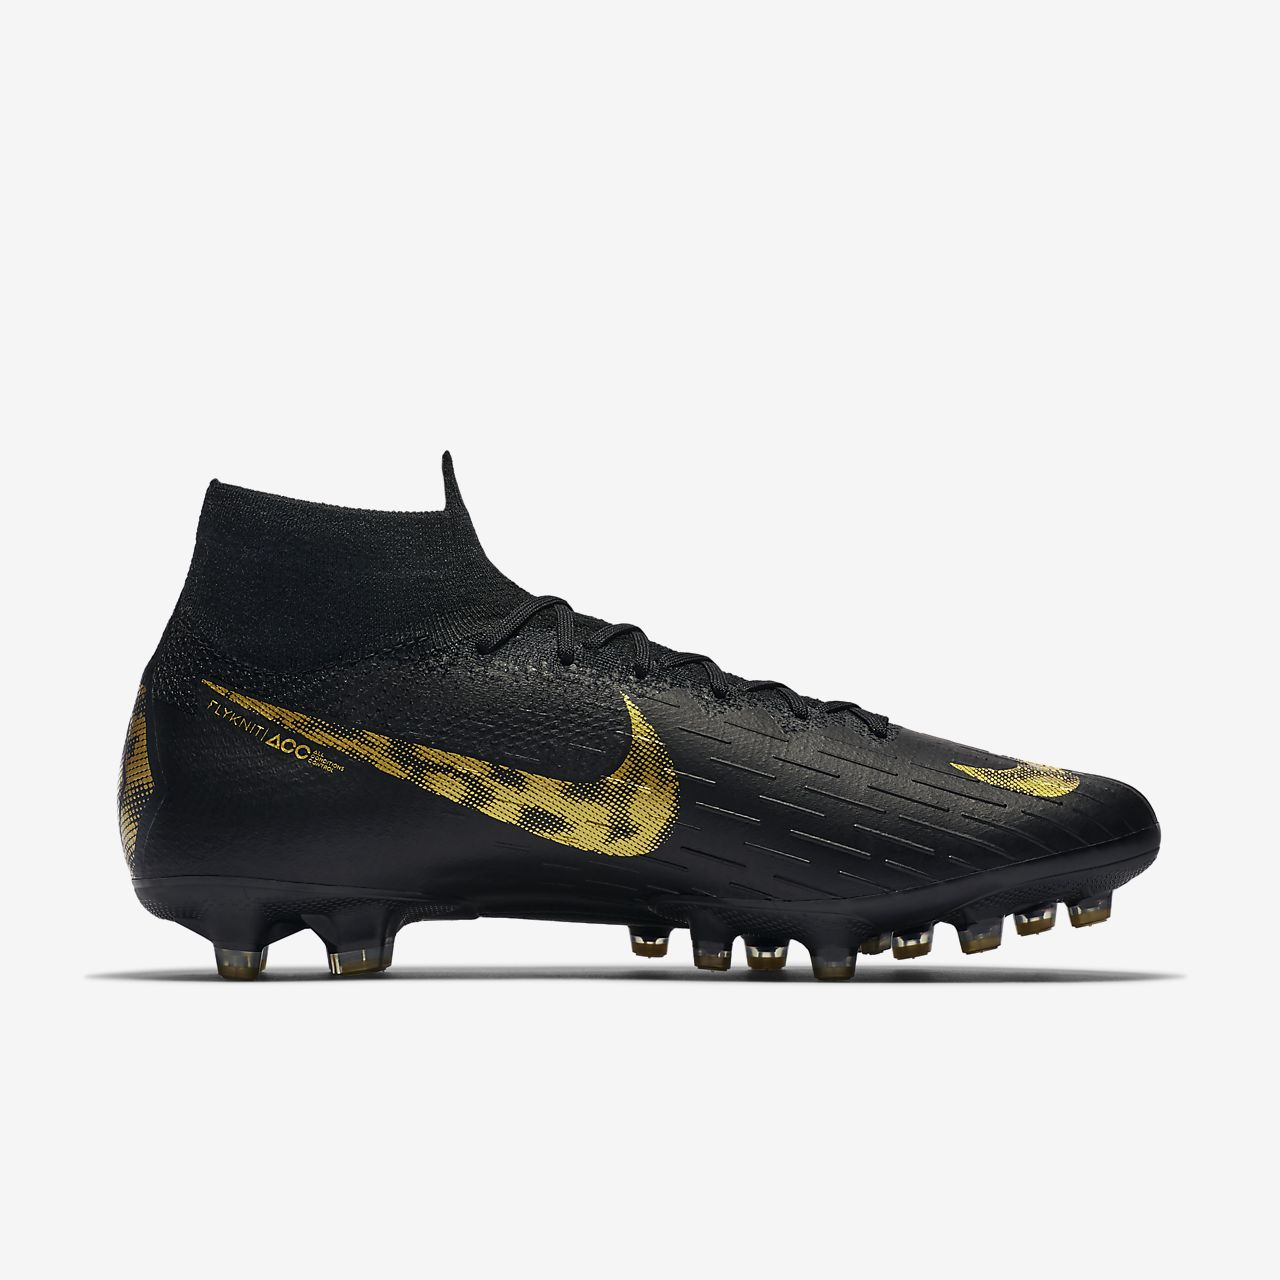 separation shoes 35d28 46ea2 ... Nike Mercurial Superfly 360 Elite AG-PRO Artificial-Grass Football Boot